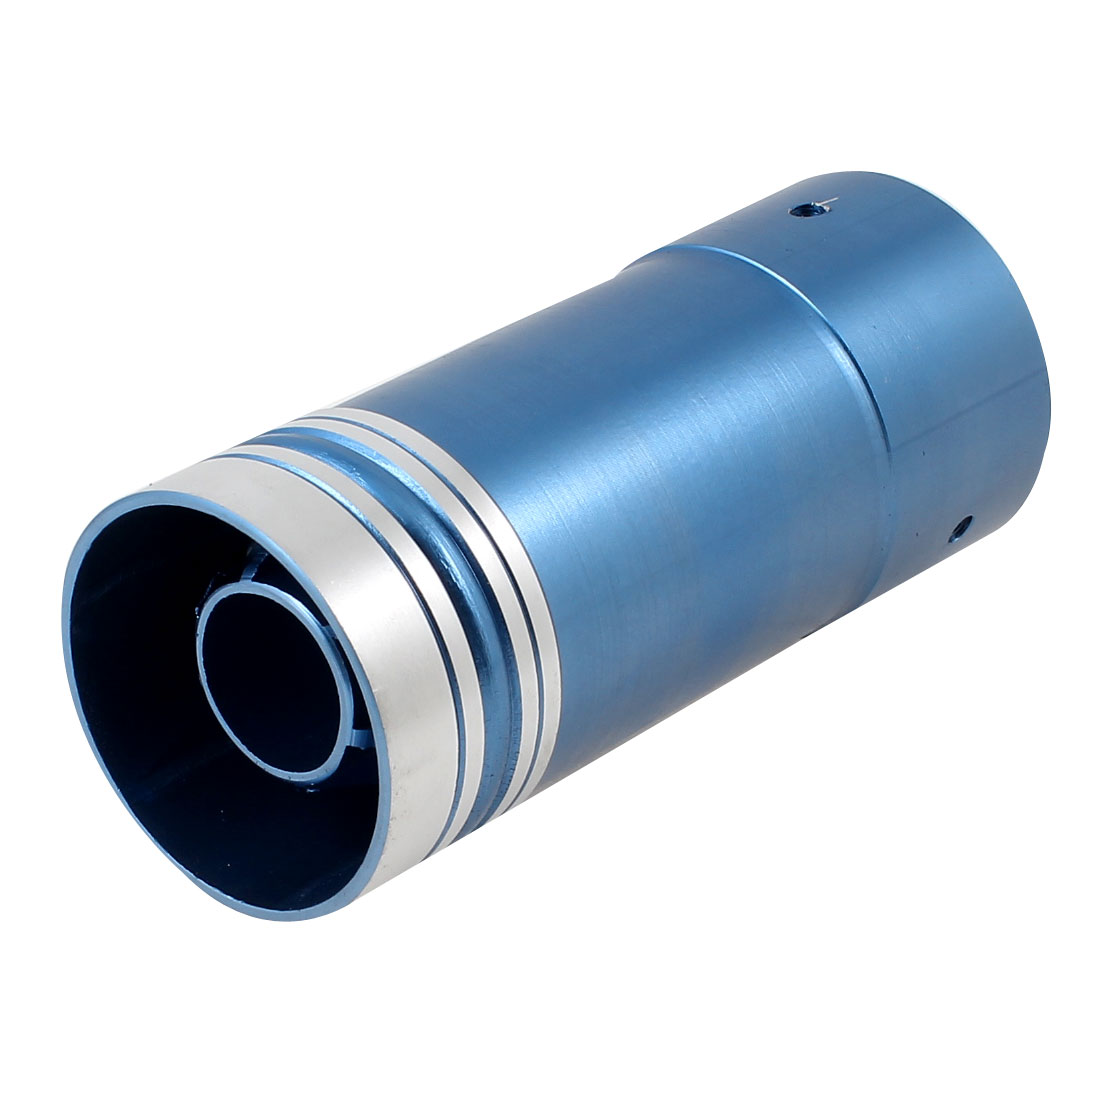 14.5cm Long Car Truck Round Rolled Blue Tail Exhaust Muffler Tip